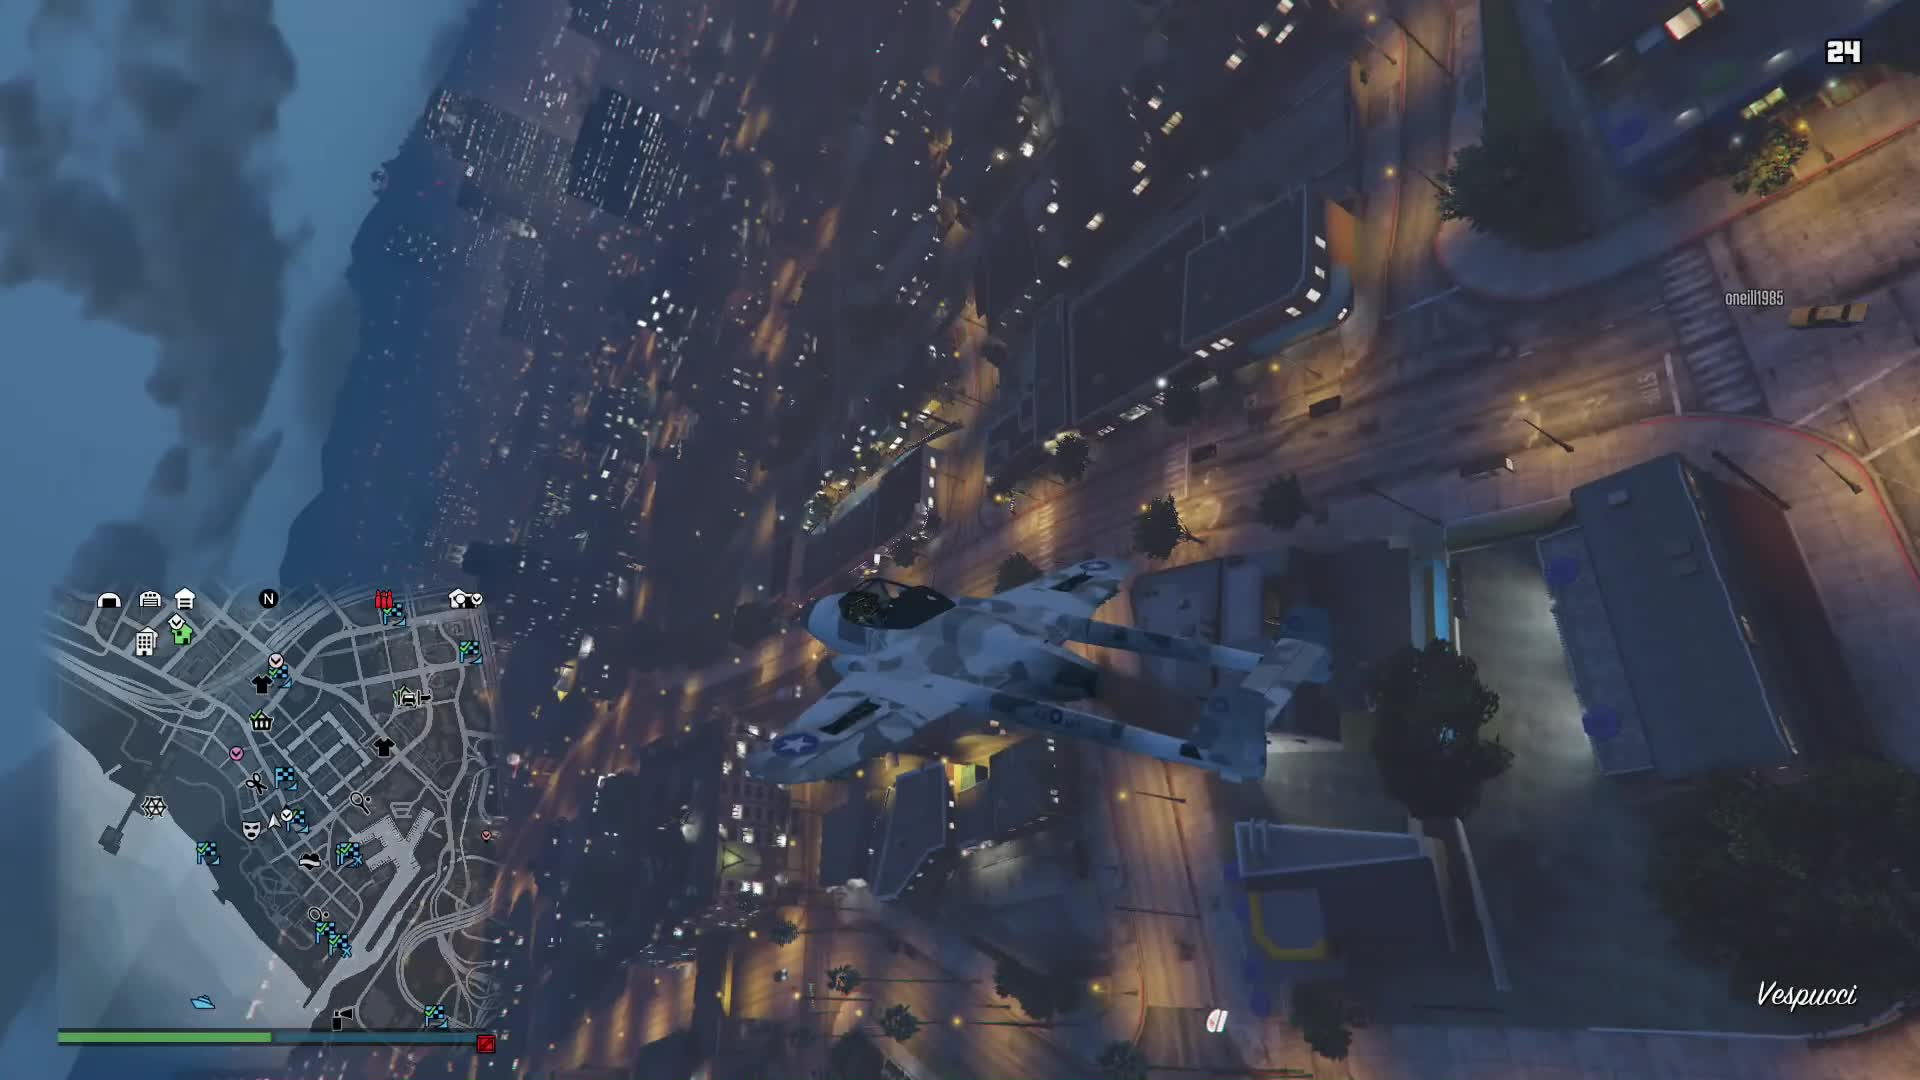 bomb, game, gta, gtav, online, pc, ps4, pvp, xbox, pyro bombing GIFs